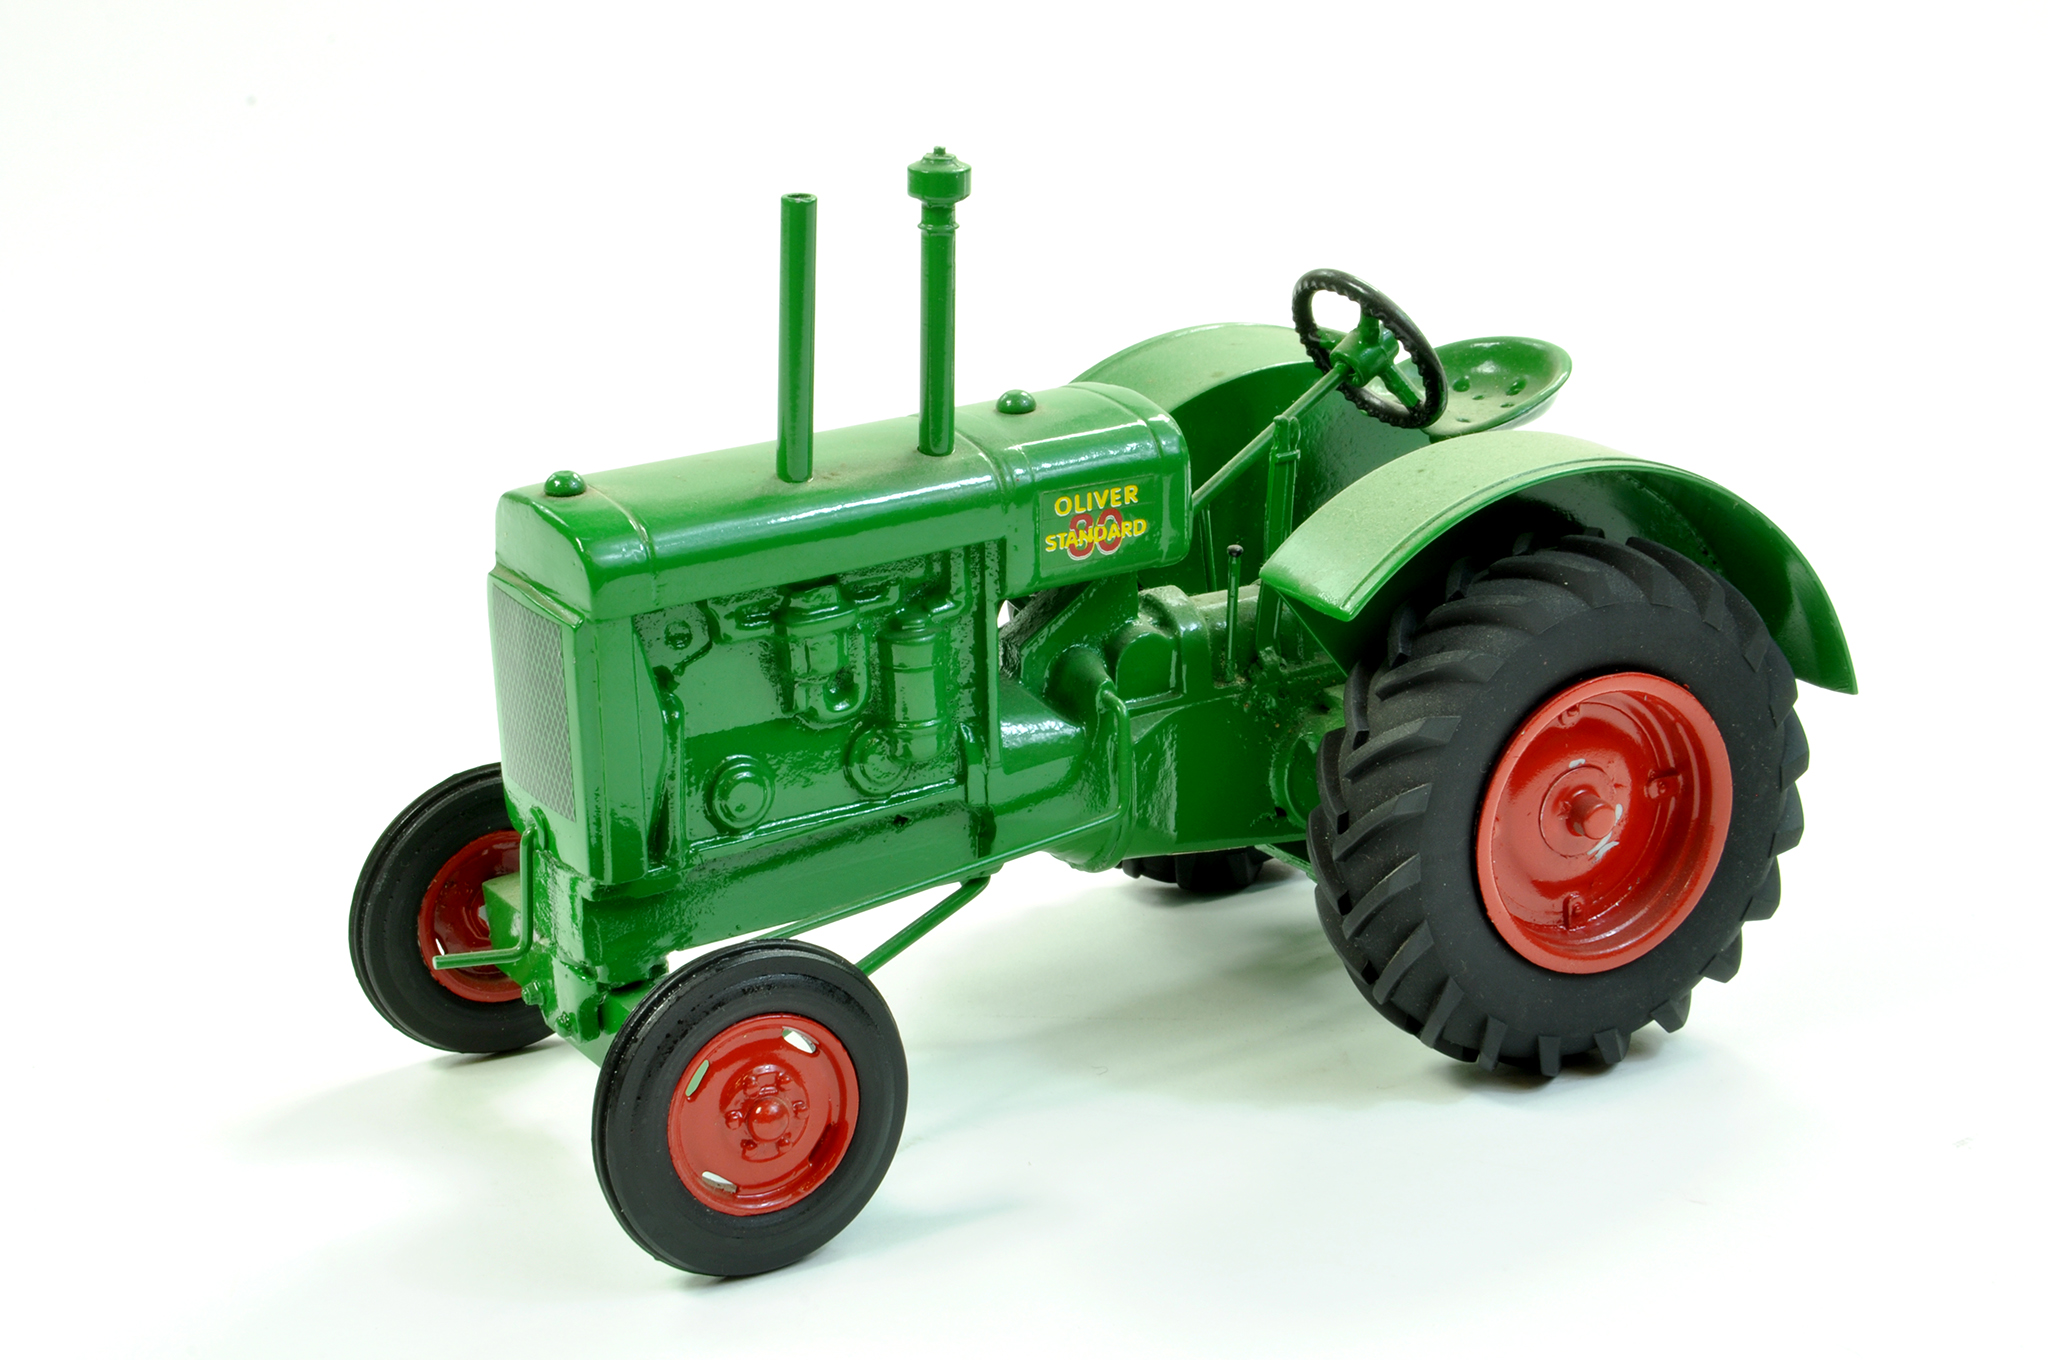 Lot 9 - Teeswater Customs (Canada) 1/16 Oliver Standard Tractor. Generally Excellent, a little dusty.